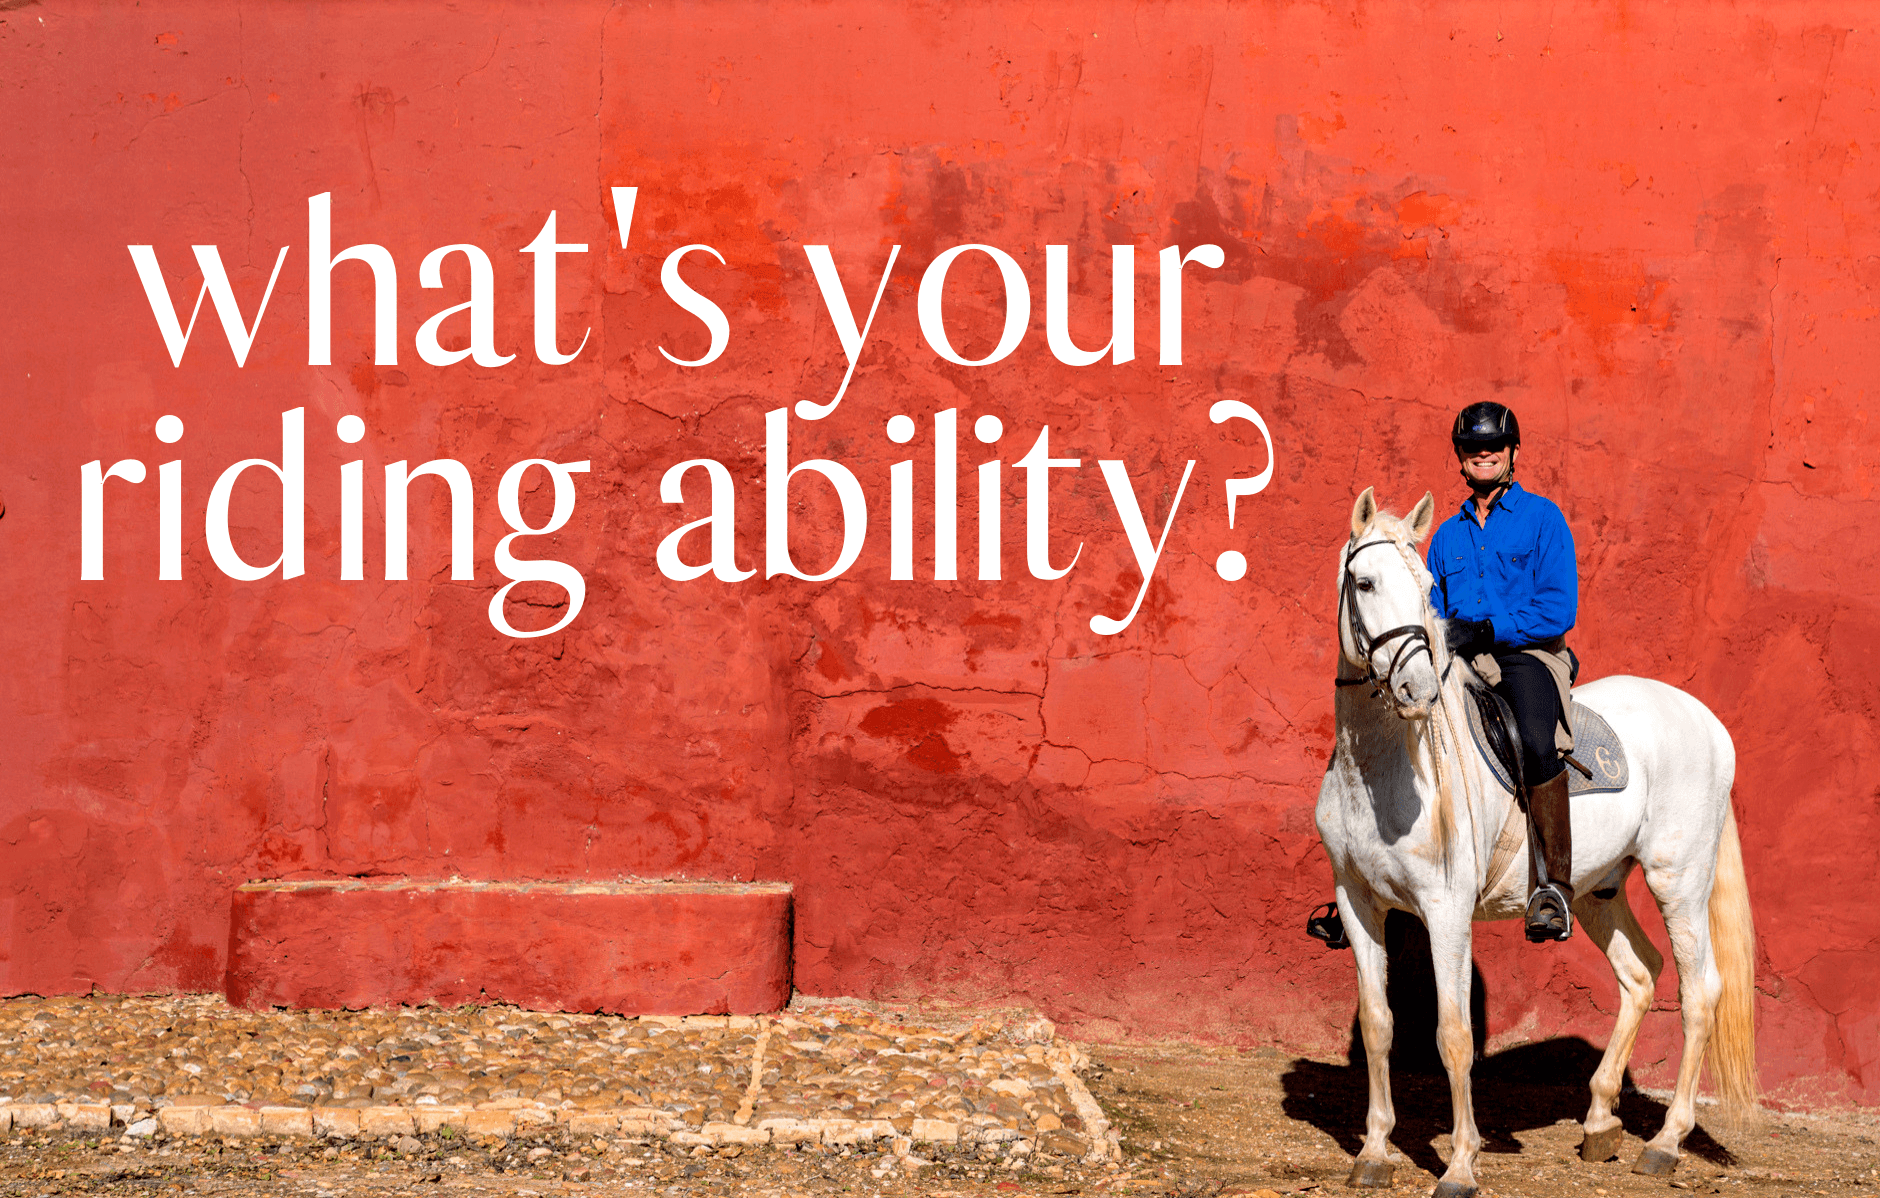 What's your riding ability? - Globetrotting horse riding holidays